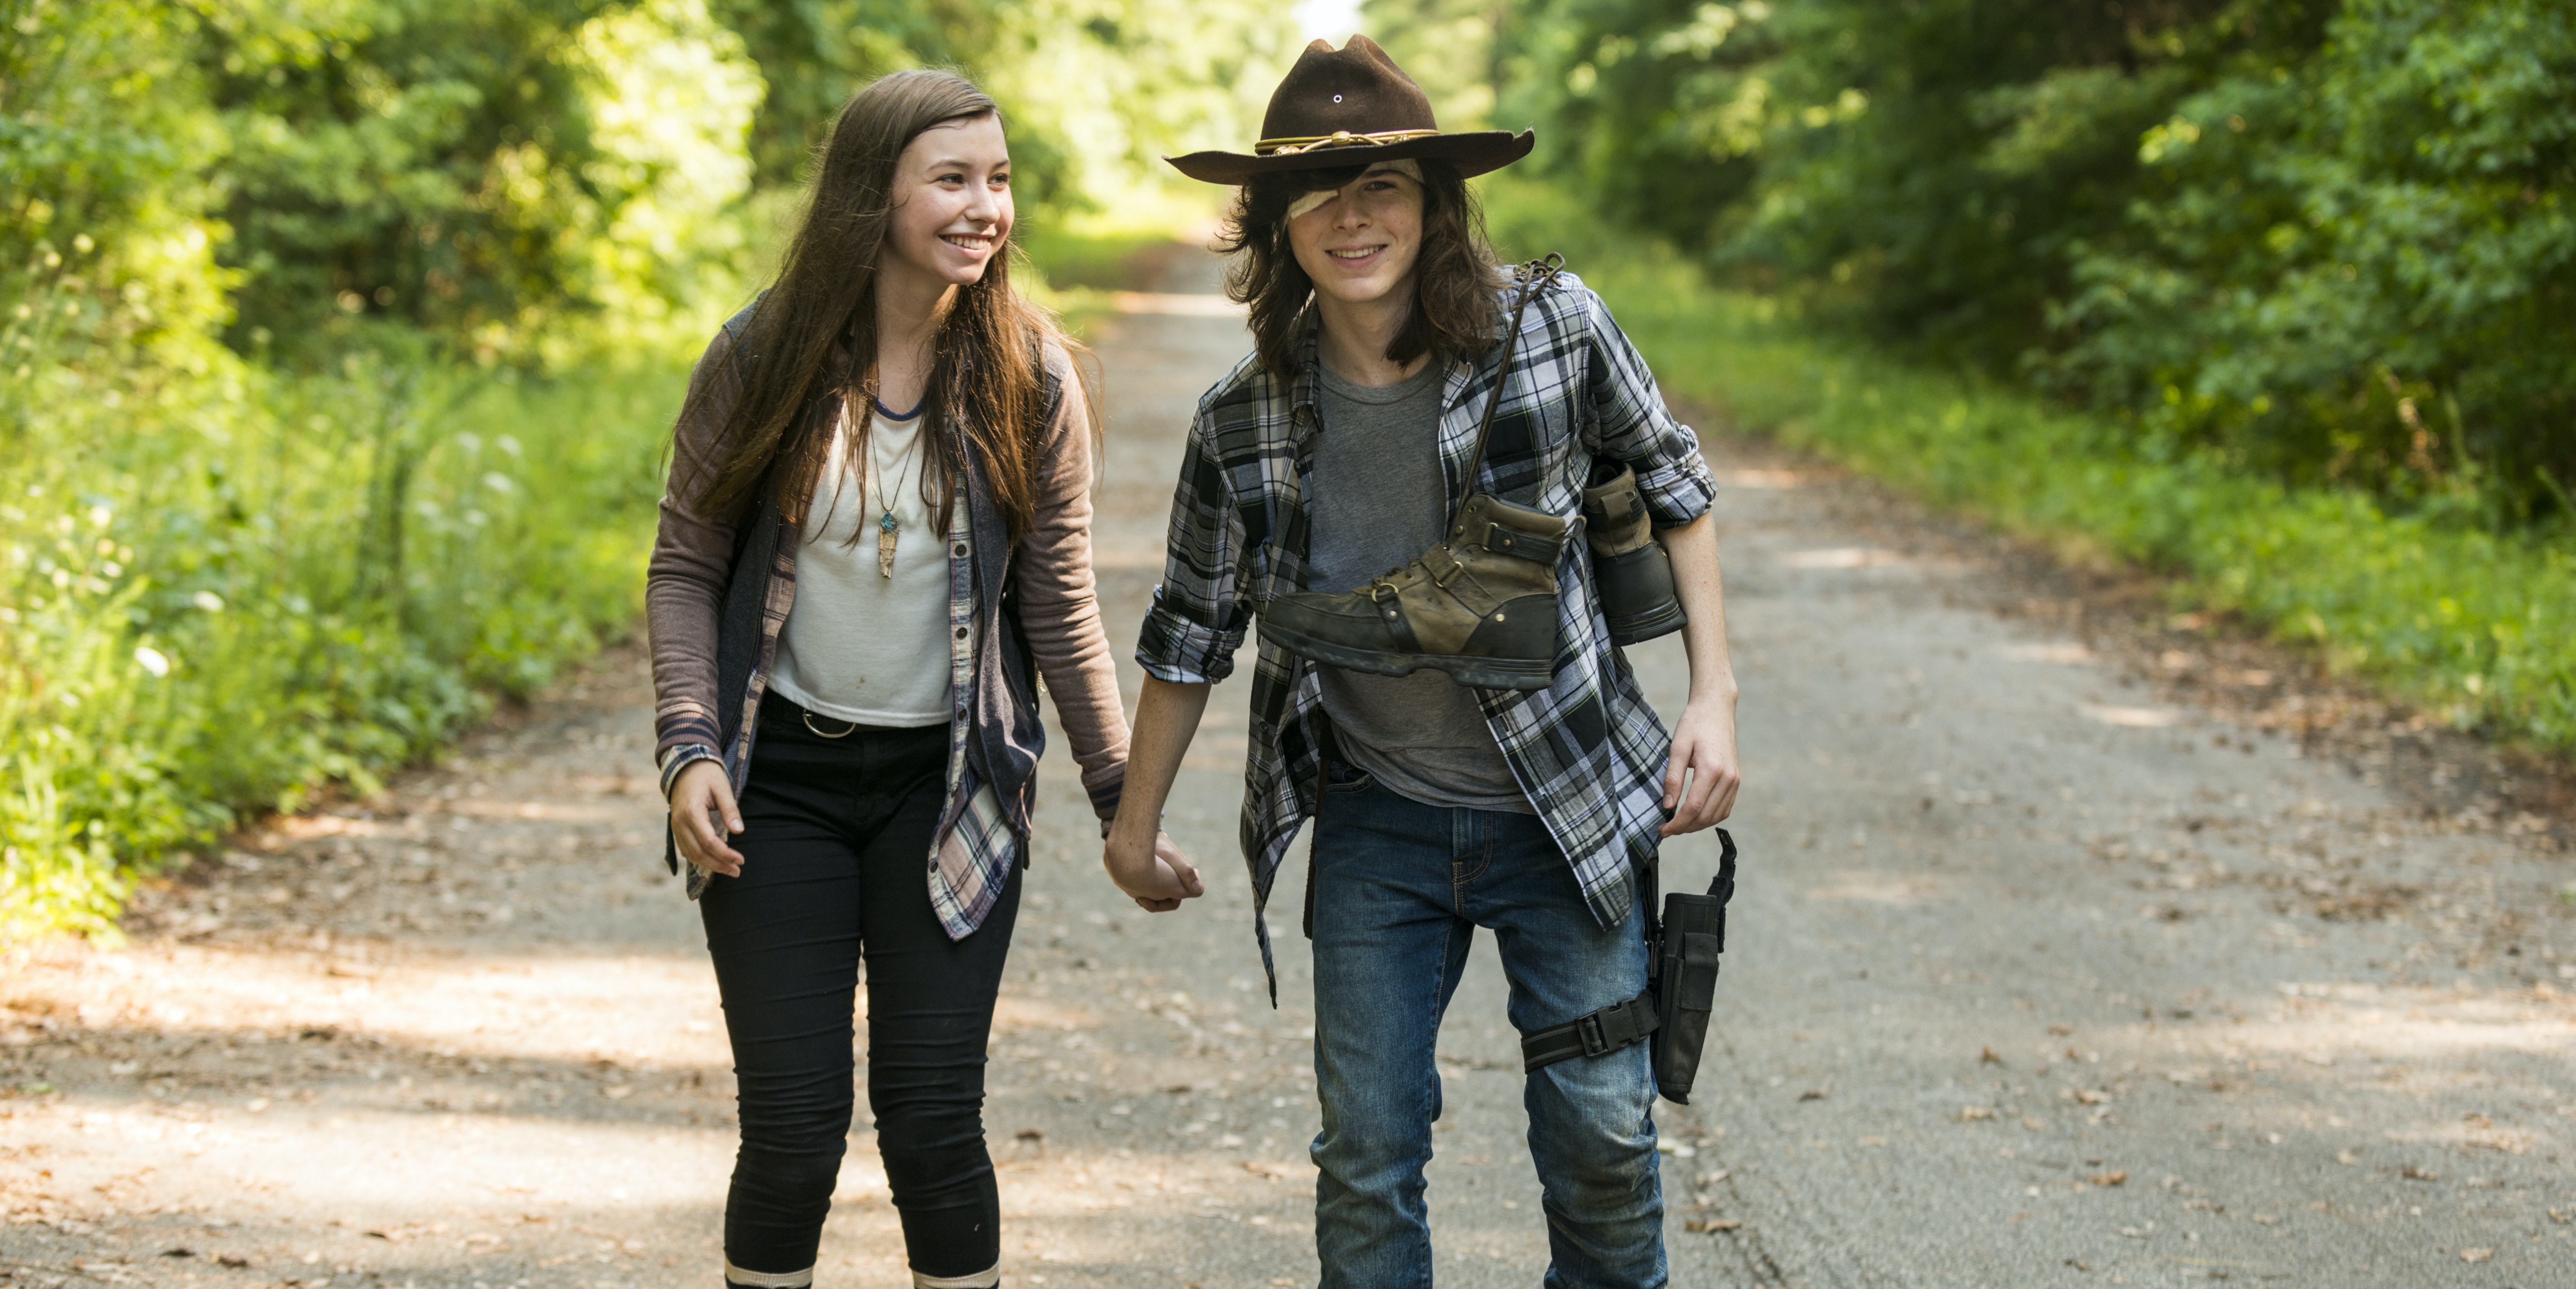 Enough With the Filler Already, 'Walking Dead'